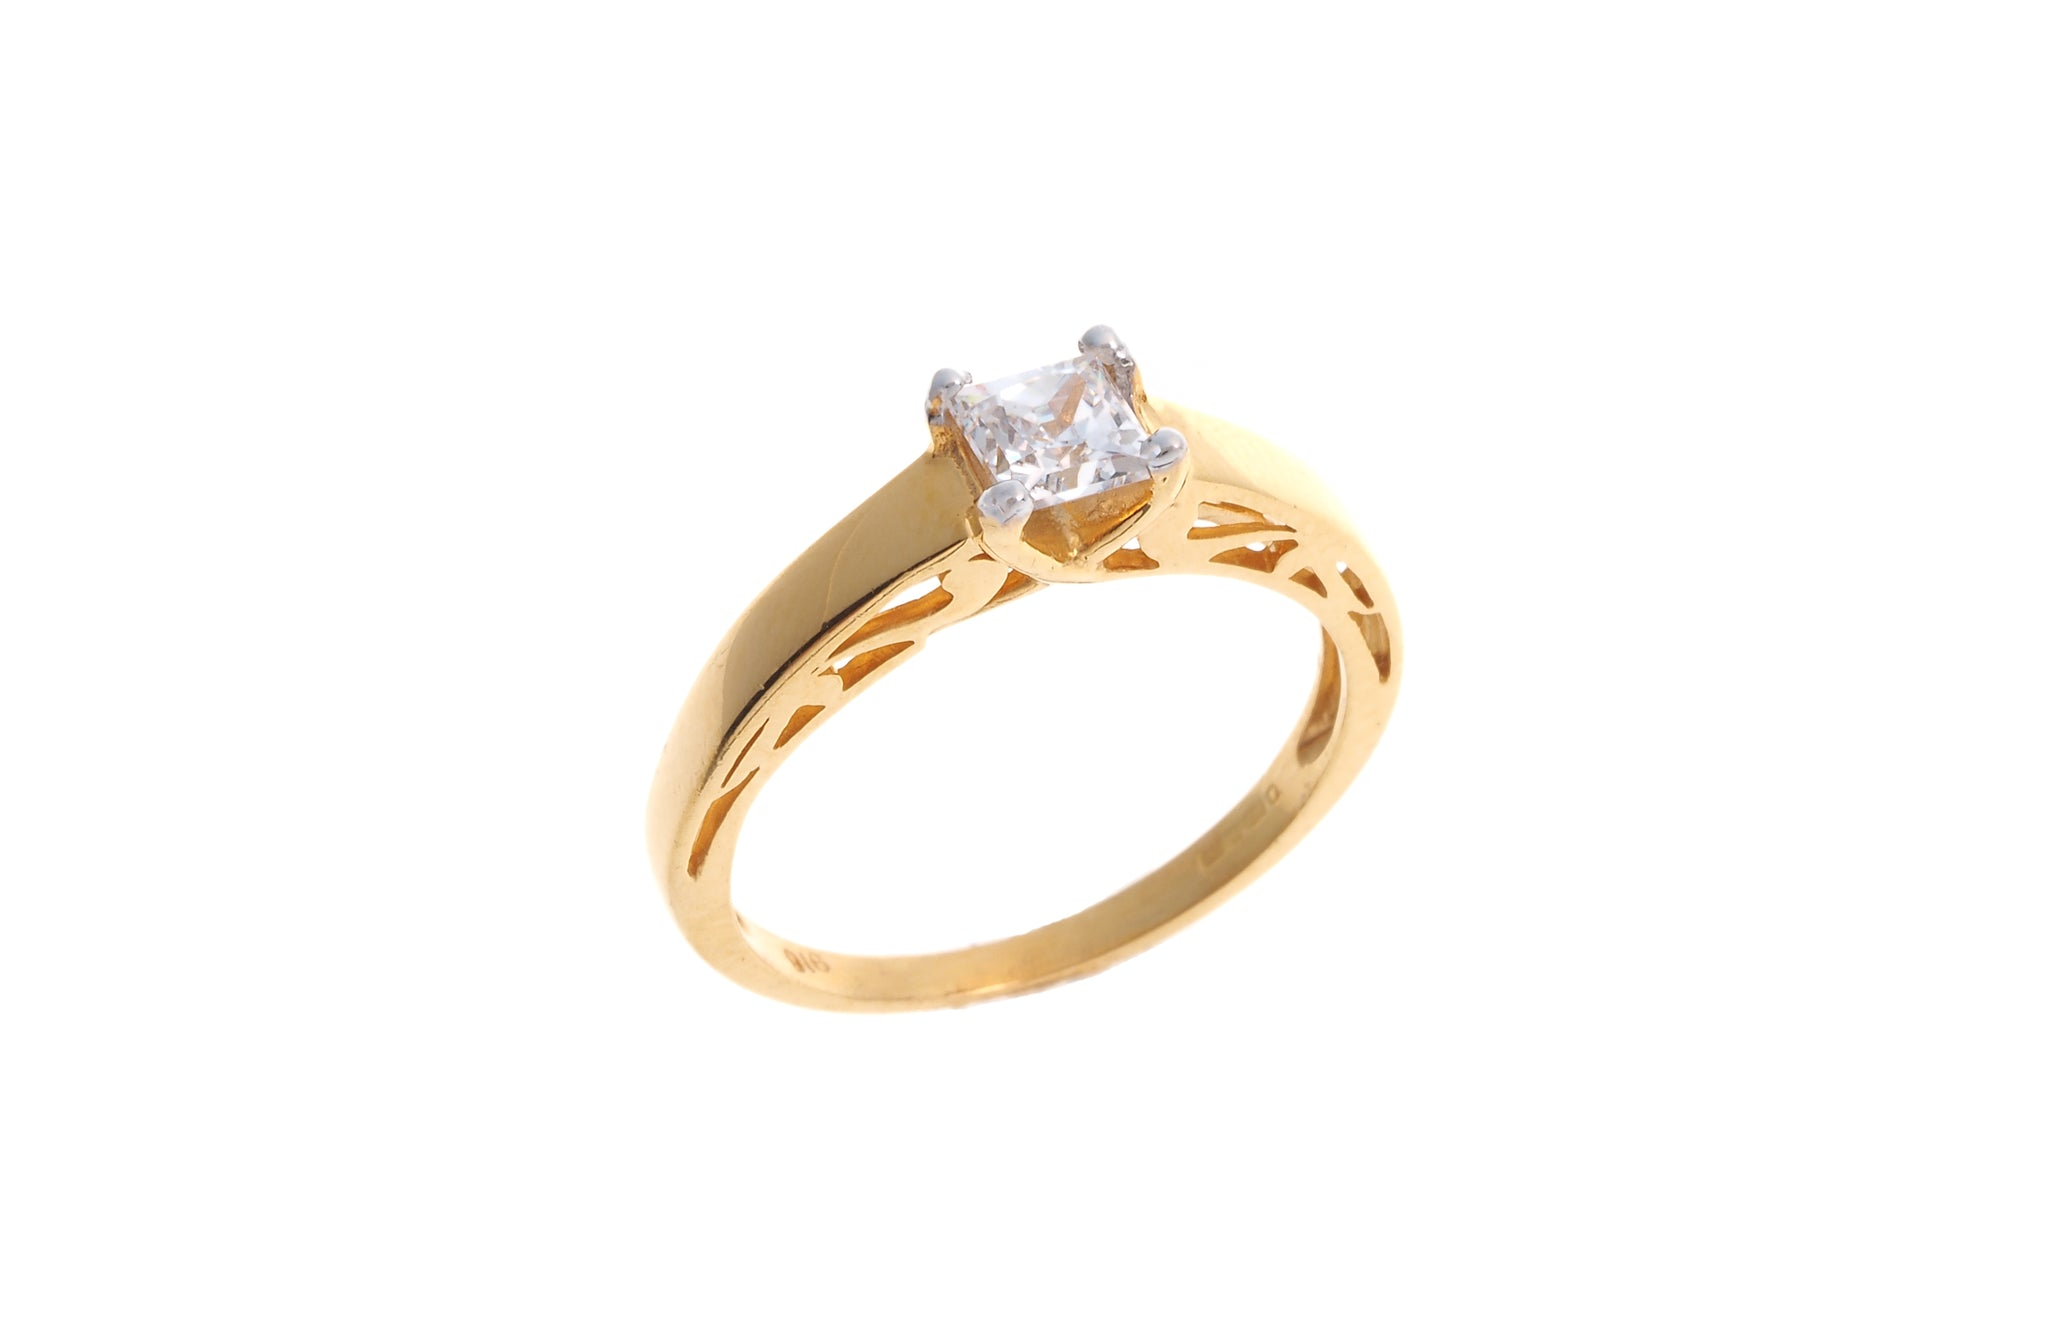 22ct Gold Cubic Zirconia Engagement Ring LR70749